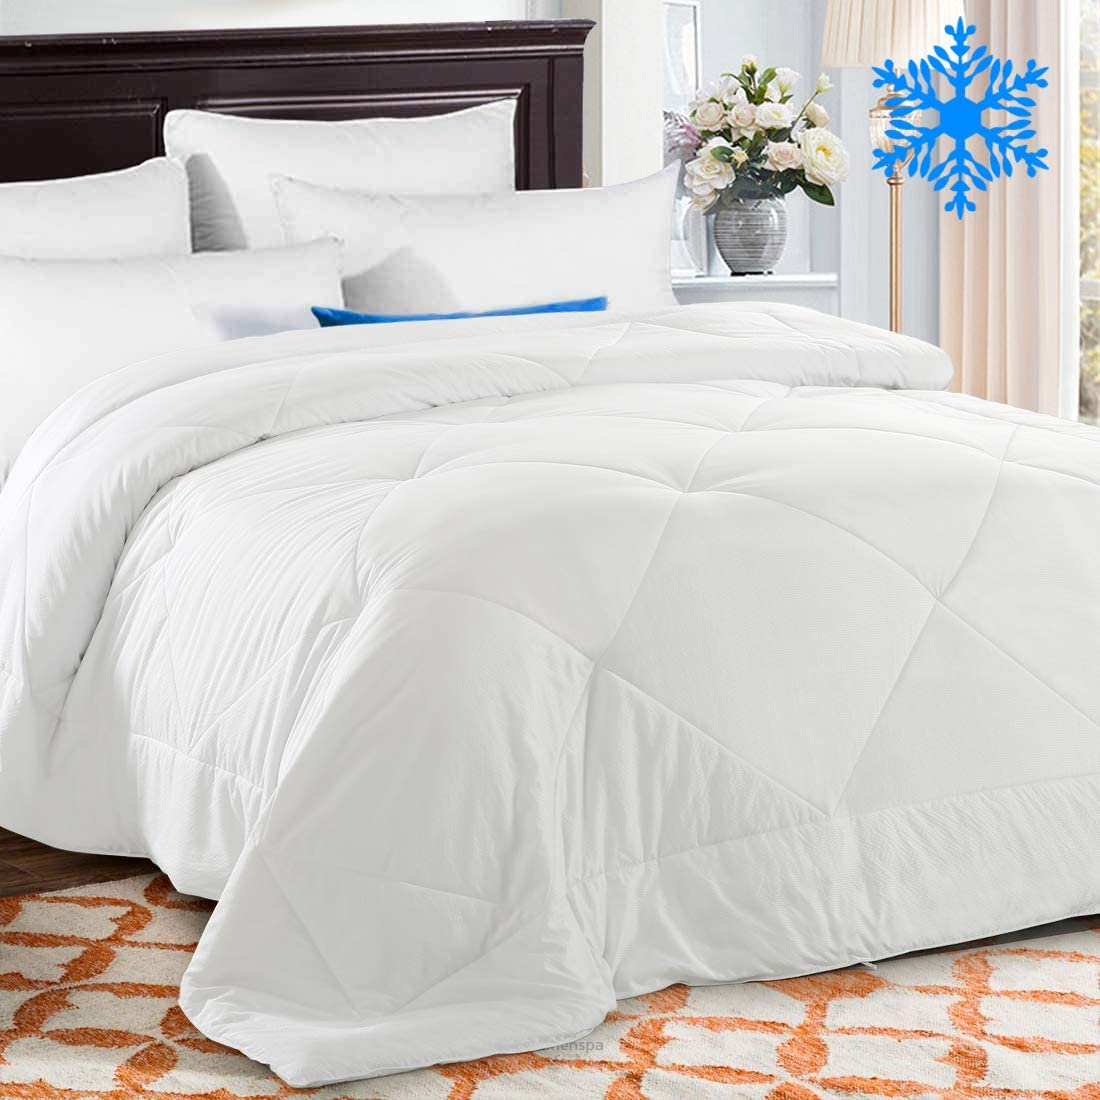 TEKAMON Summer Cooling Full Comforter Soft Quilted Down Alternative Duvet Insert with Corner Tabs, Fluffy Reversible Collection for Hotel, Cool White, 82 x 86 inches